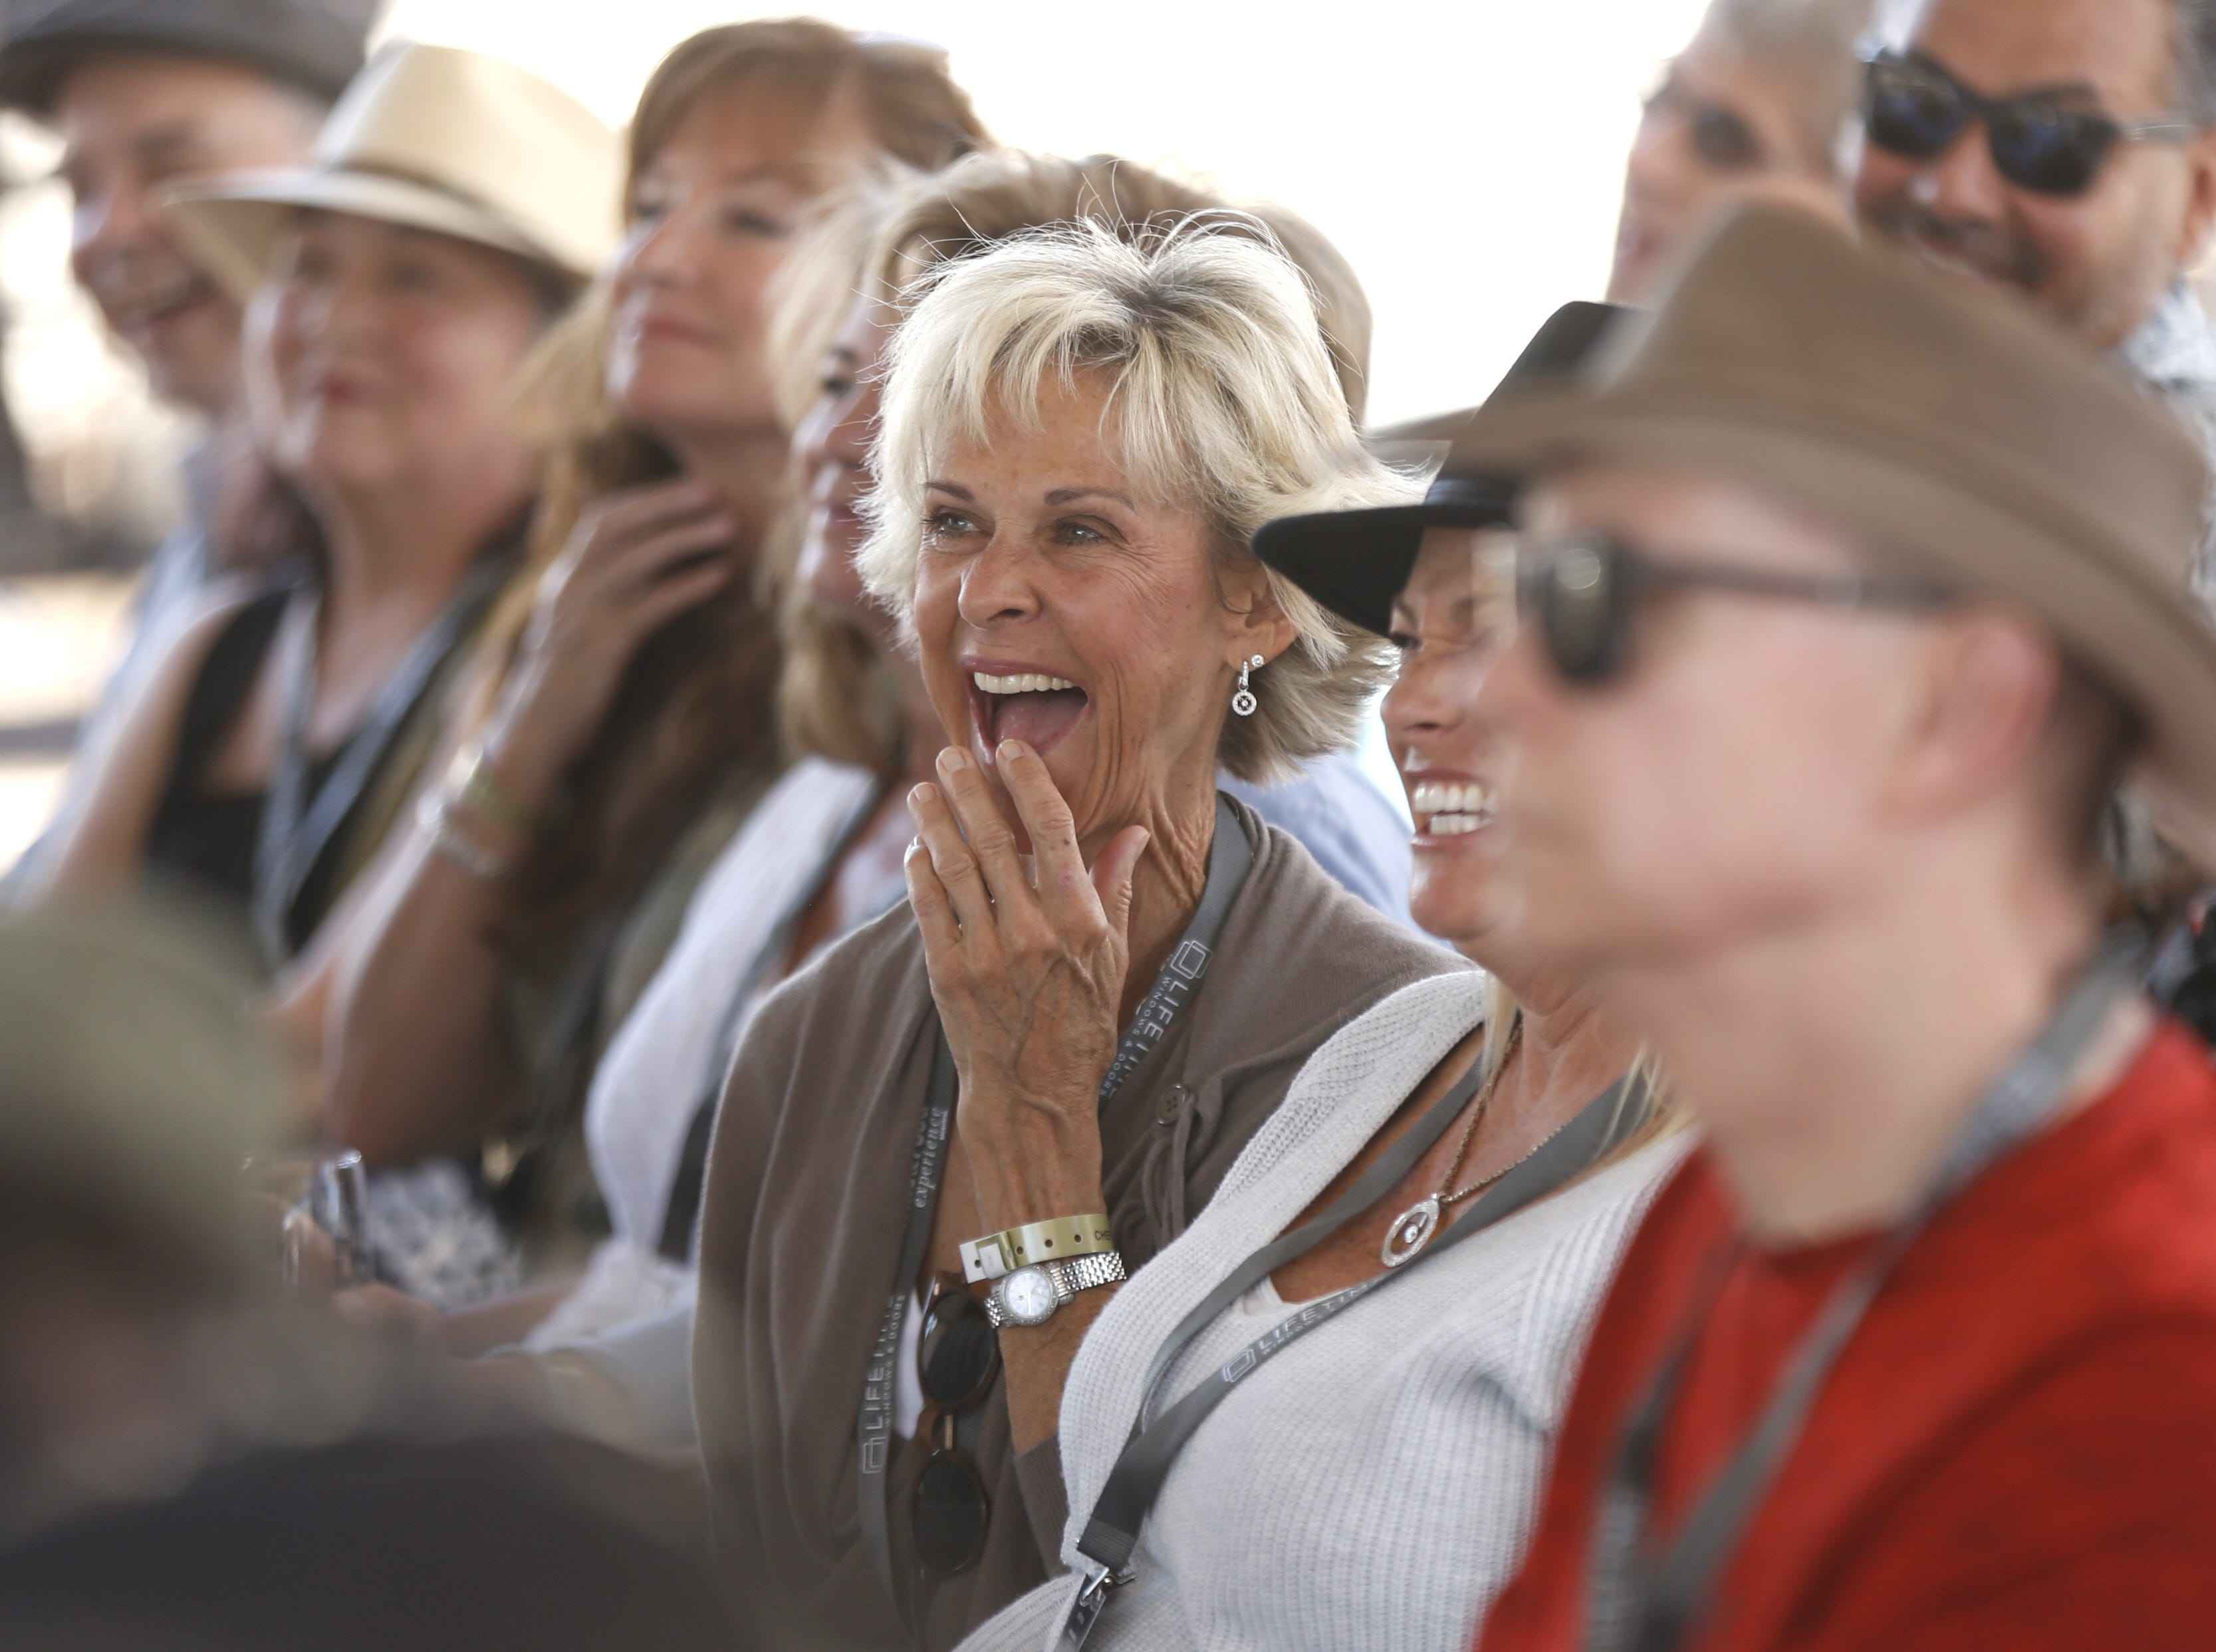 A guest laughs during a cooking demonstration at the azcentral Wine & Food Experience at WestWorld of Scottsdale, Ariz. on Saturday, Nov. 3, 2018.